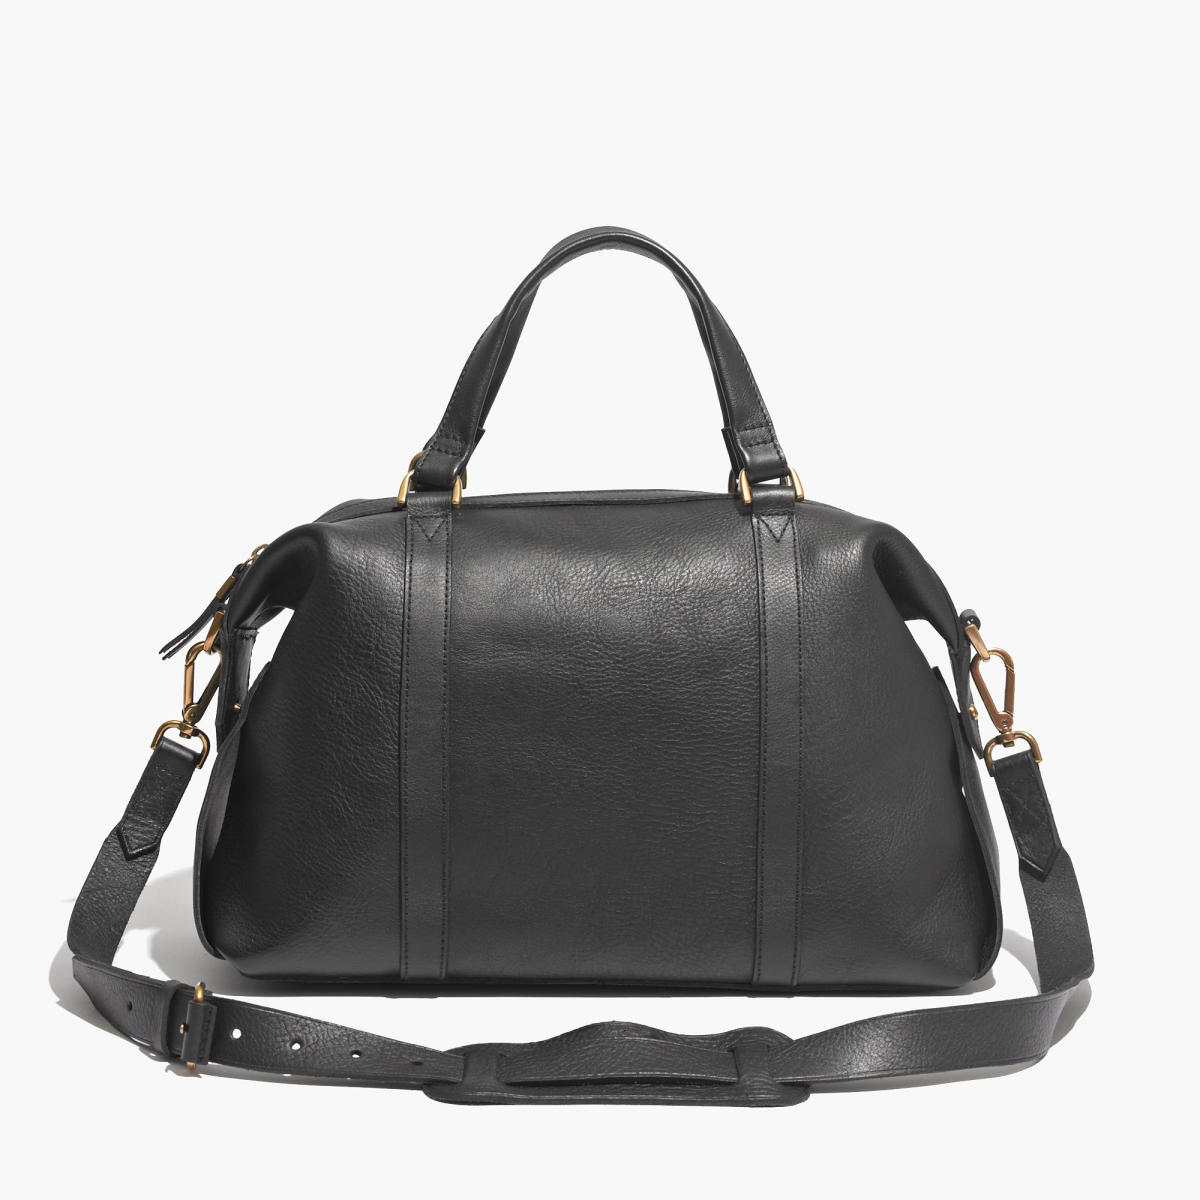 Madewell Glasgow Satchel, 124.95 with code SALEONSALE (from $198), available at Madewell.